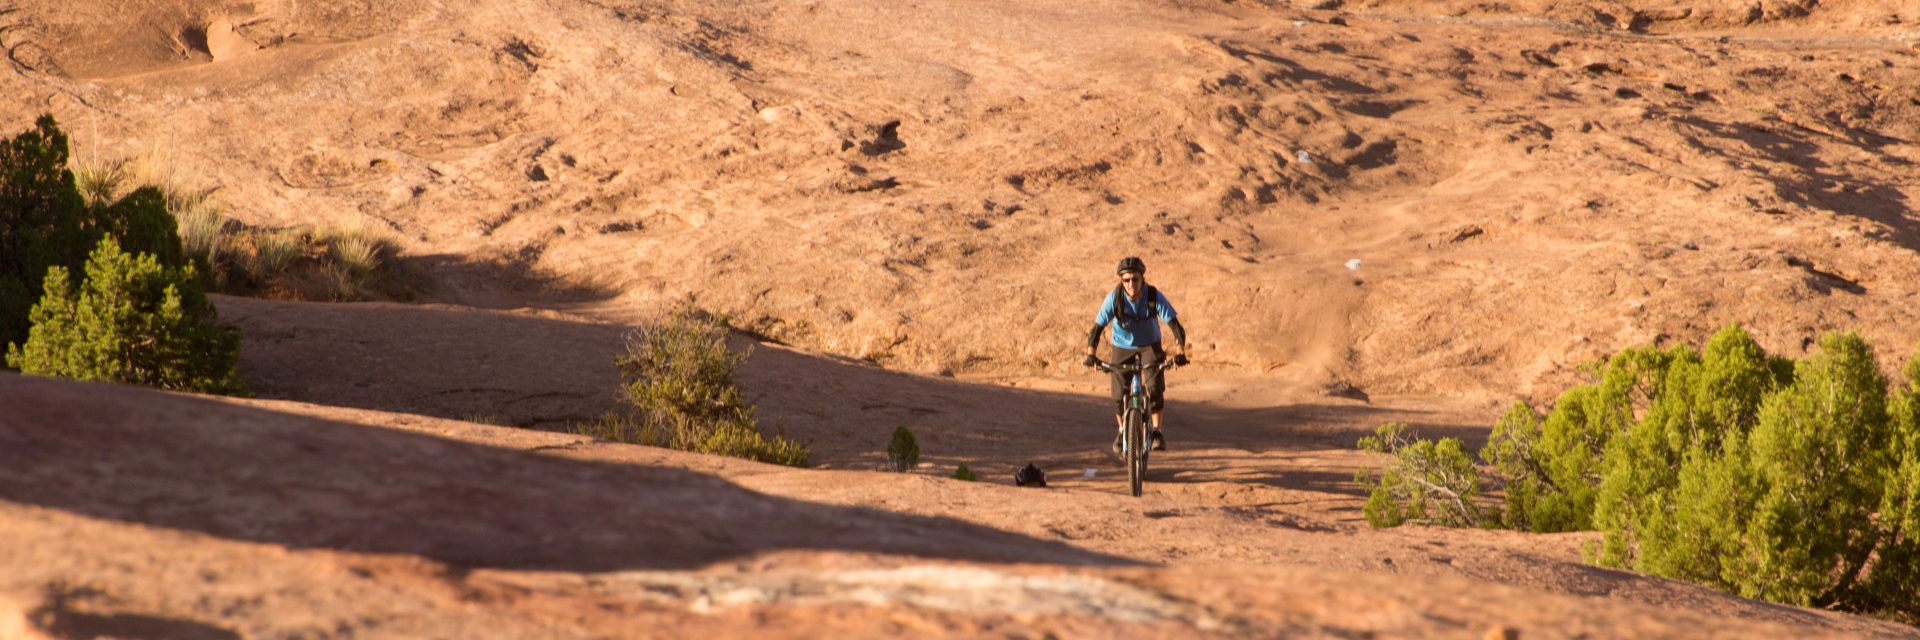 Slickrock Trail, Moab UT, world famous mountain bike guided tours